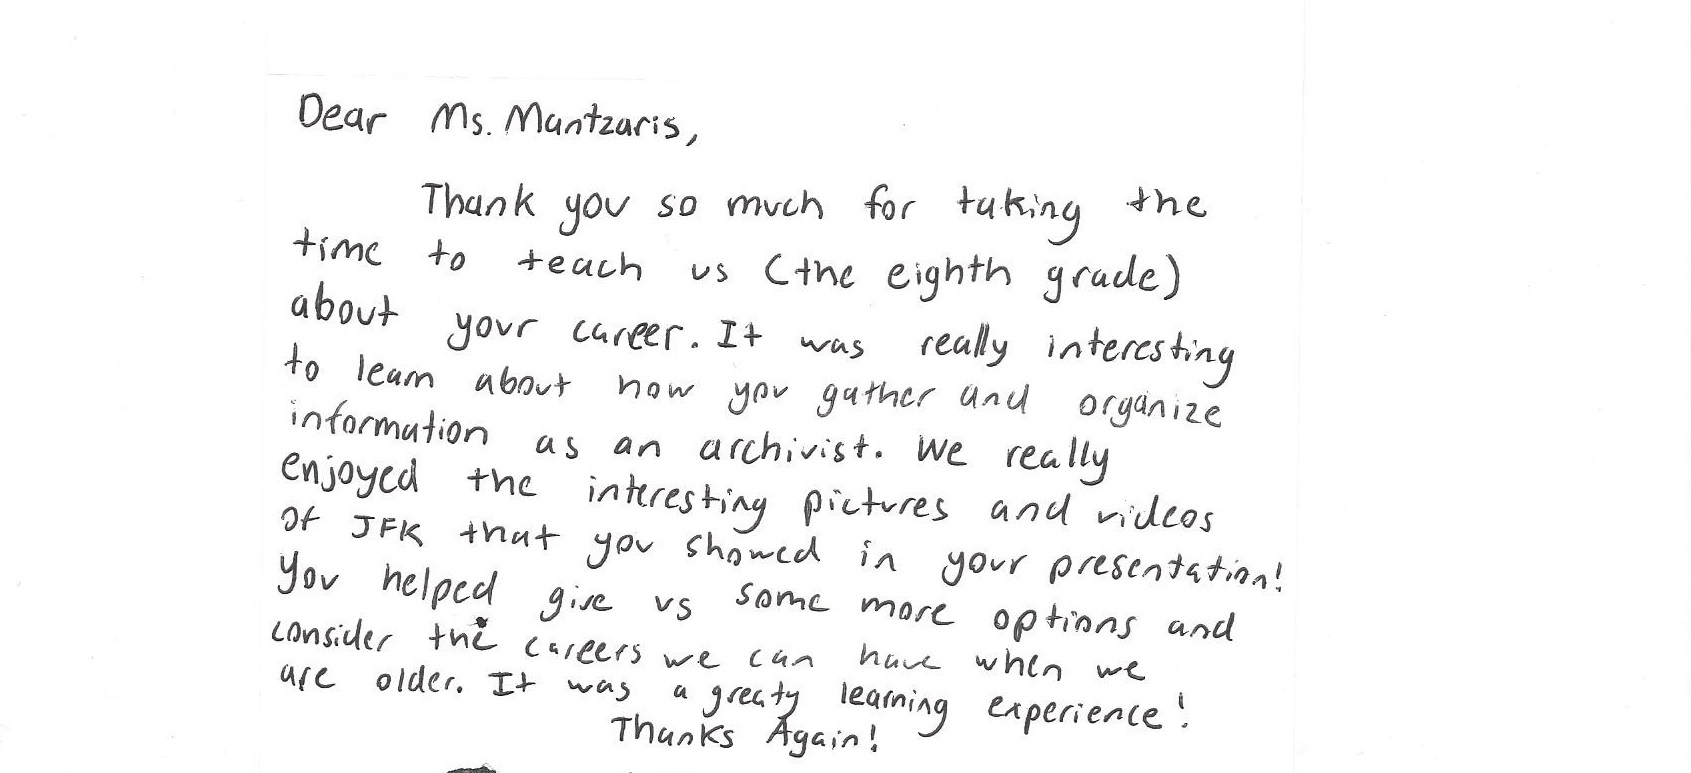 Career day thank you letter gallery letter format formal sample career day with middle school students an archivists report letter 1croppednamecropped x 2 expocarfo expocarfo